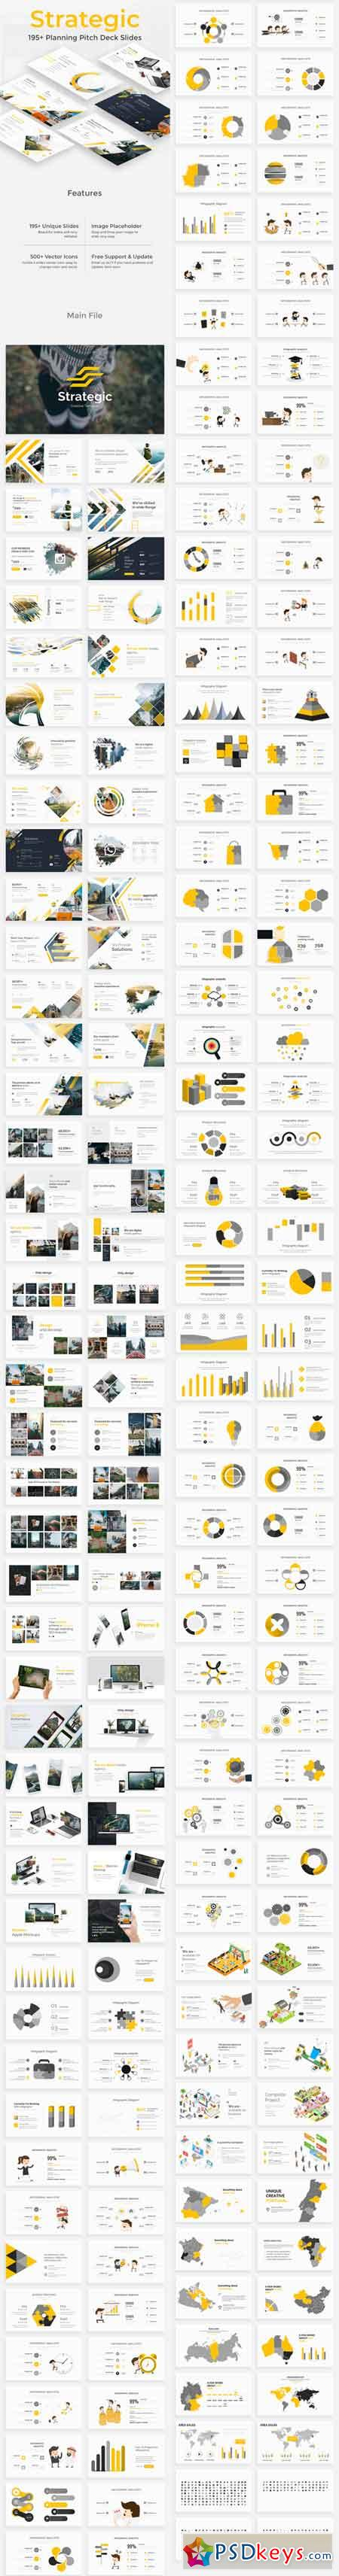 Strategic Planning Pitch Deck Powerpoint Template 22642461